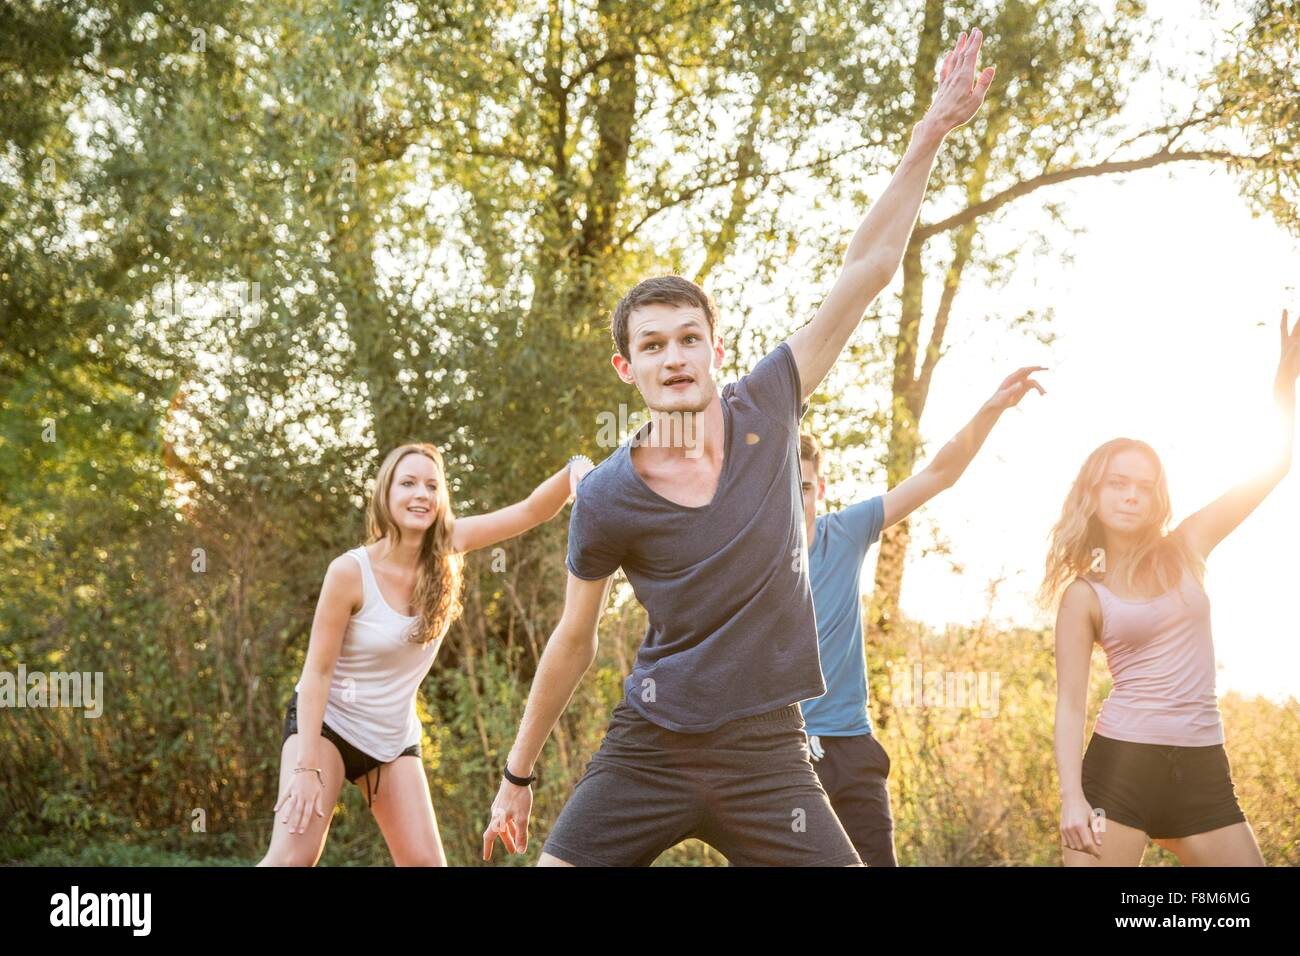 Group of friends exercising in rural environment - Stock Image